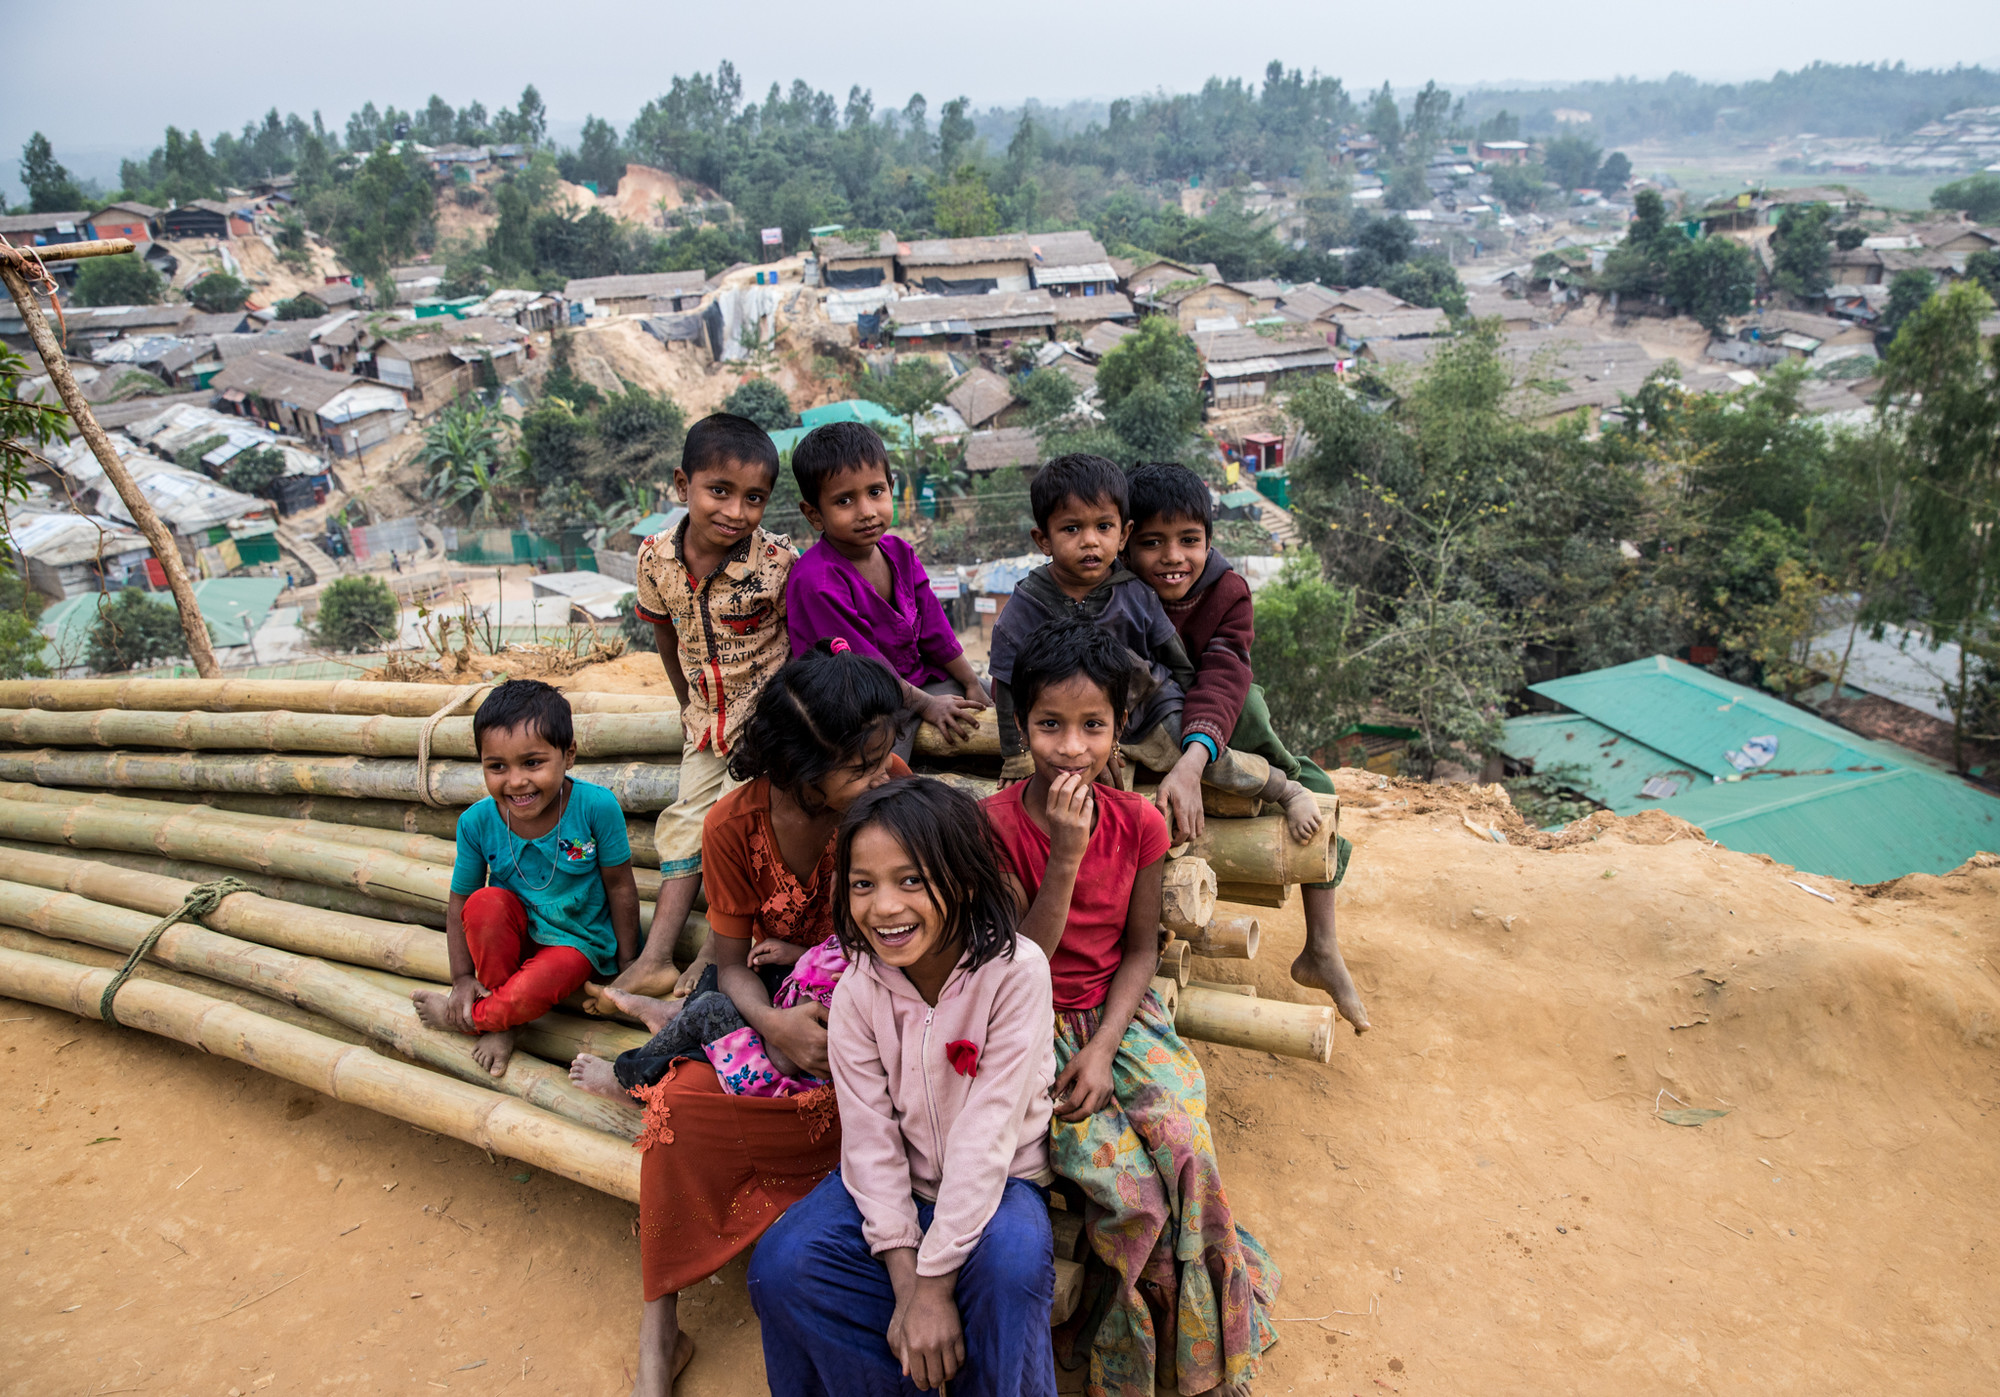 A group of children smile while sitting on a pile of large bamboo poles arranged in bundles.